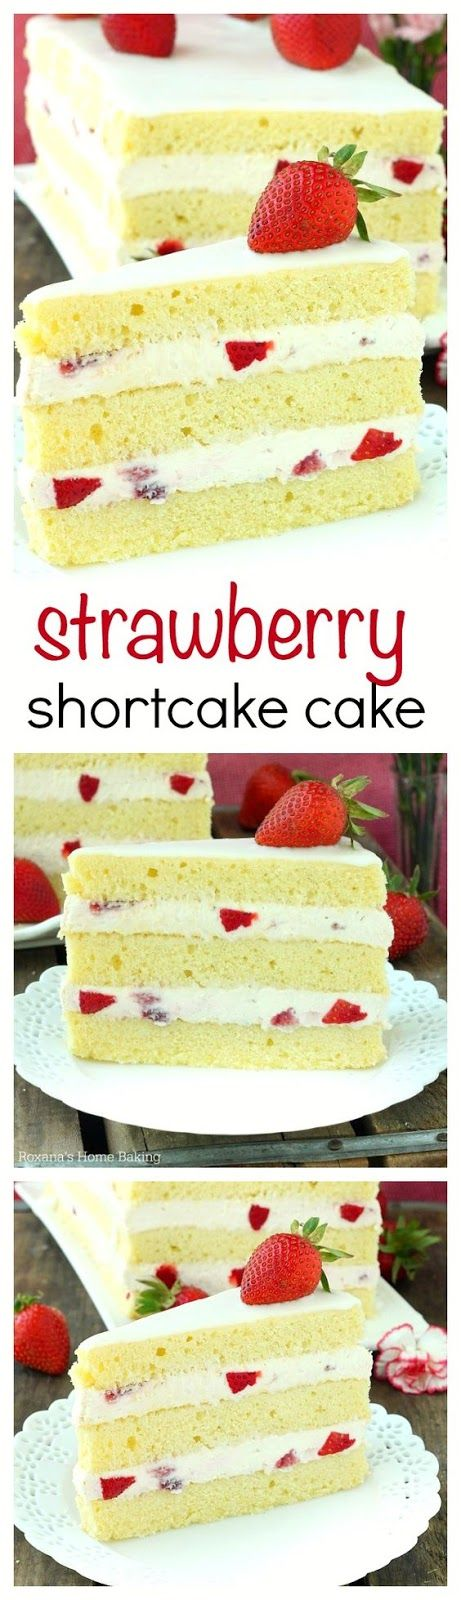 STRAWBERRY SHORTCAKE CAKE RECIPE | Cake And Food Recipe